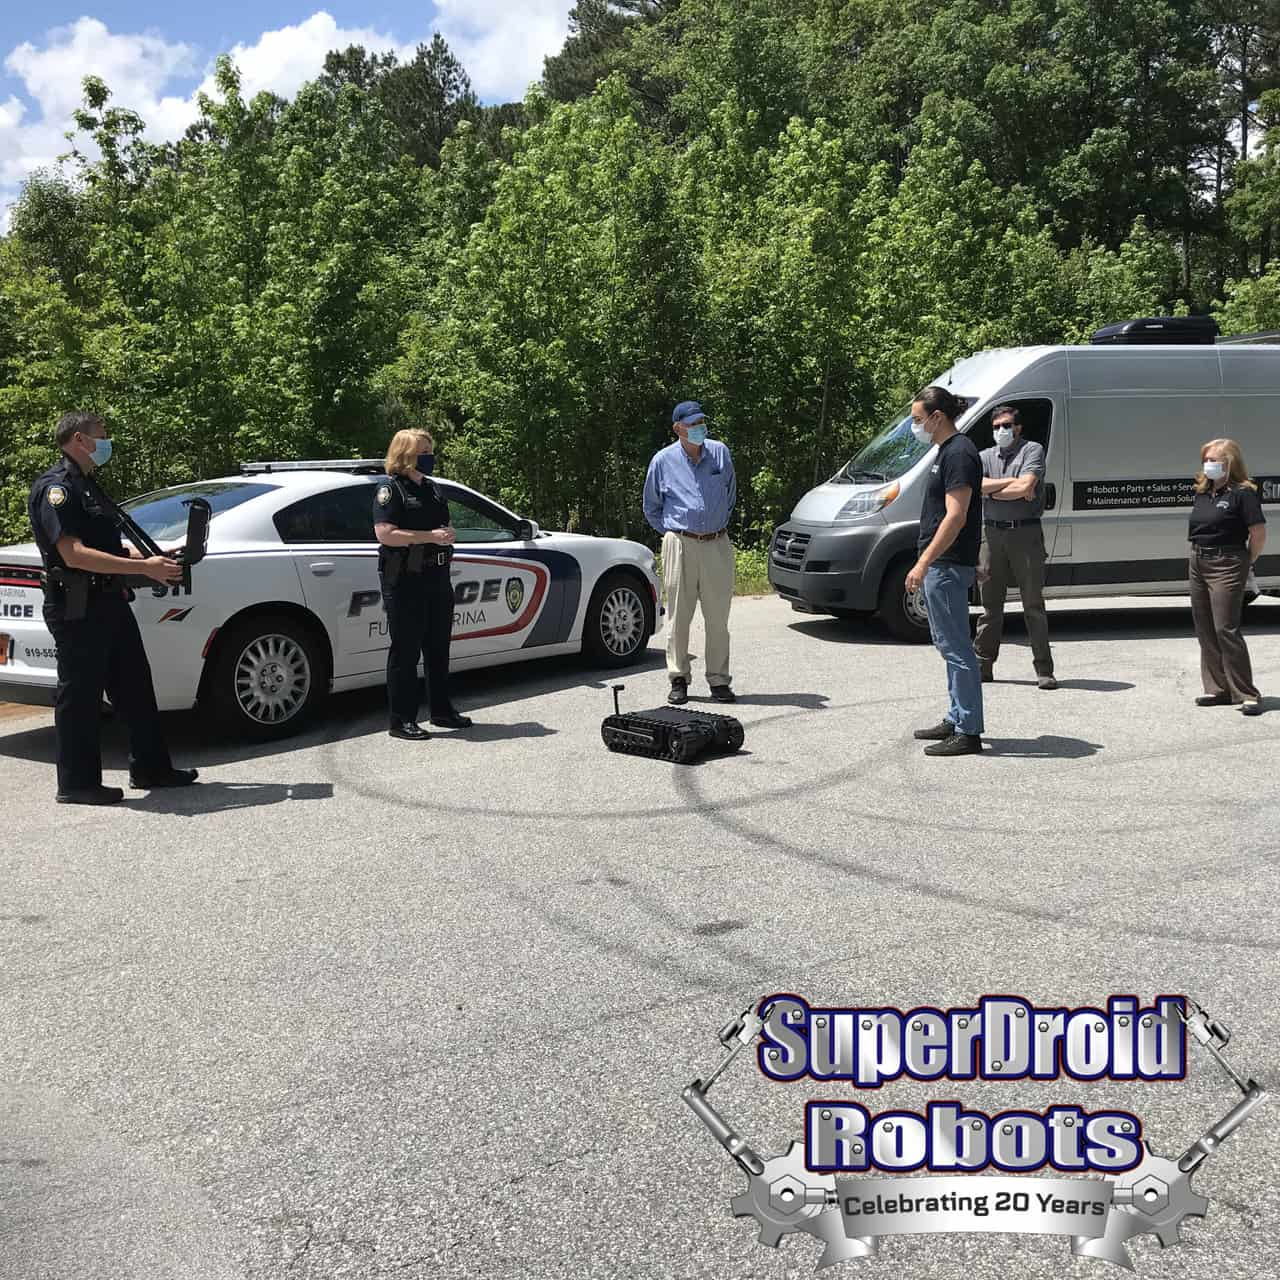 SuperDroid Robots Donates Tactical Robot to Local Police Department